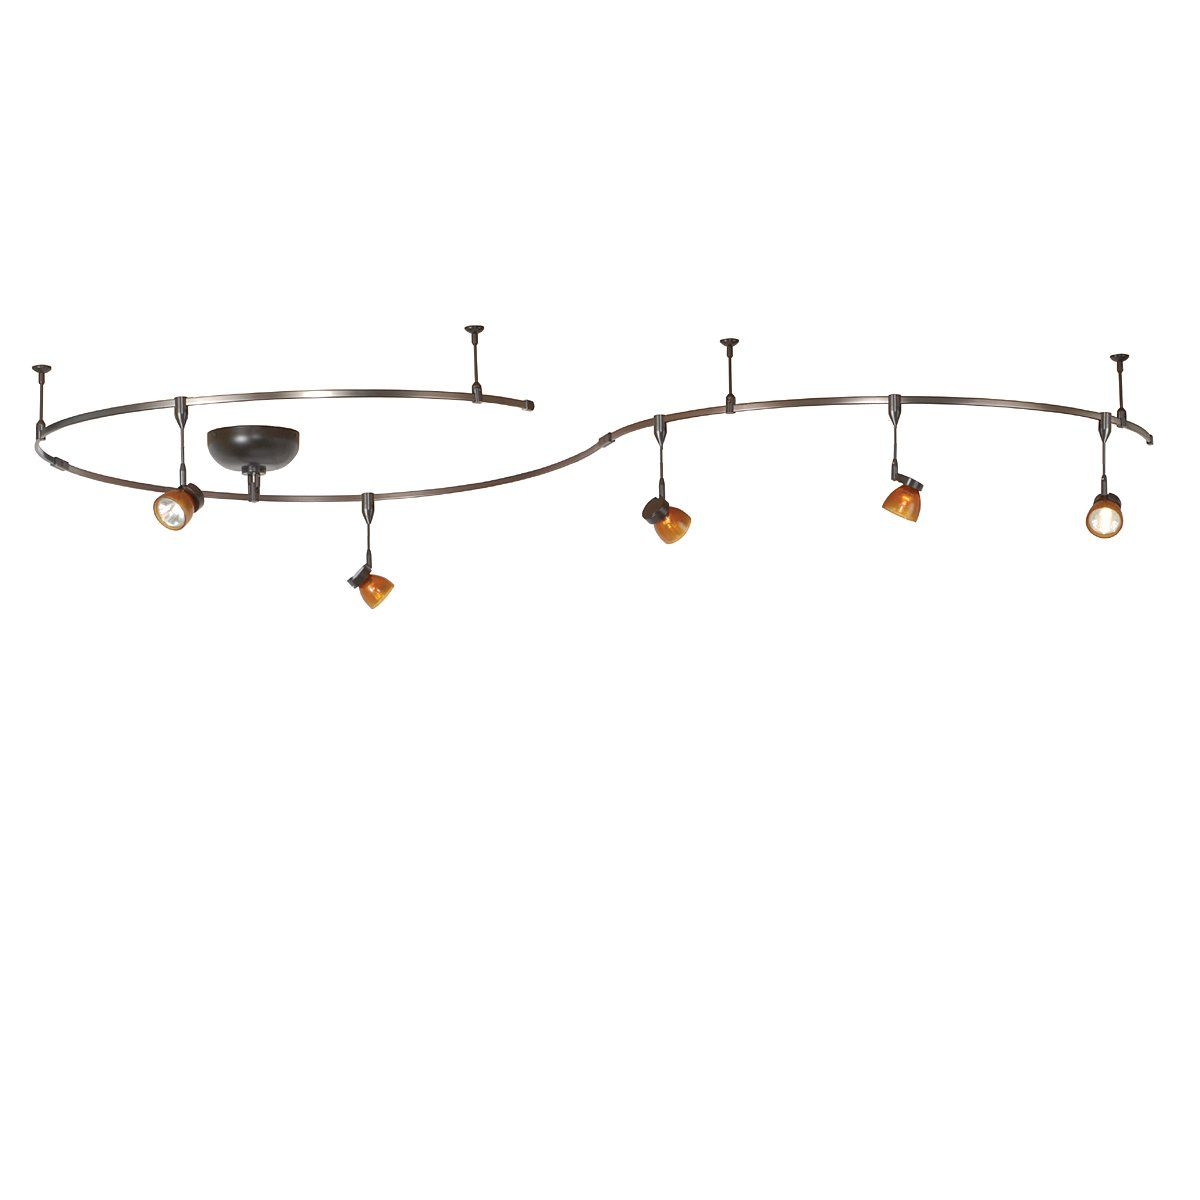 monorail lighting systems. WAC Lighting LM-K8111-AS/DB 5 Light Monorail Kit, Amber Systems U